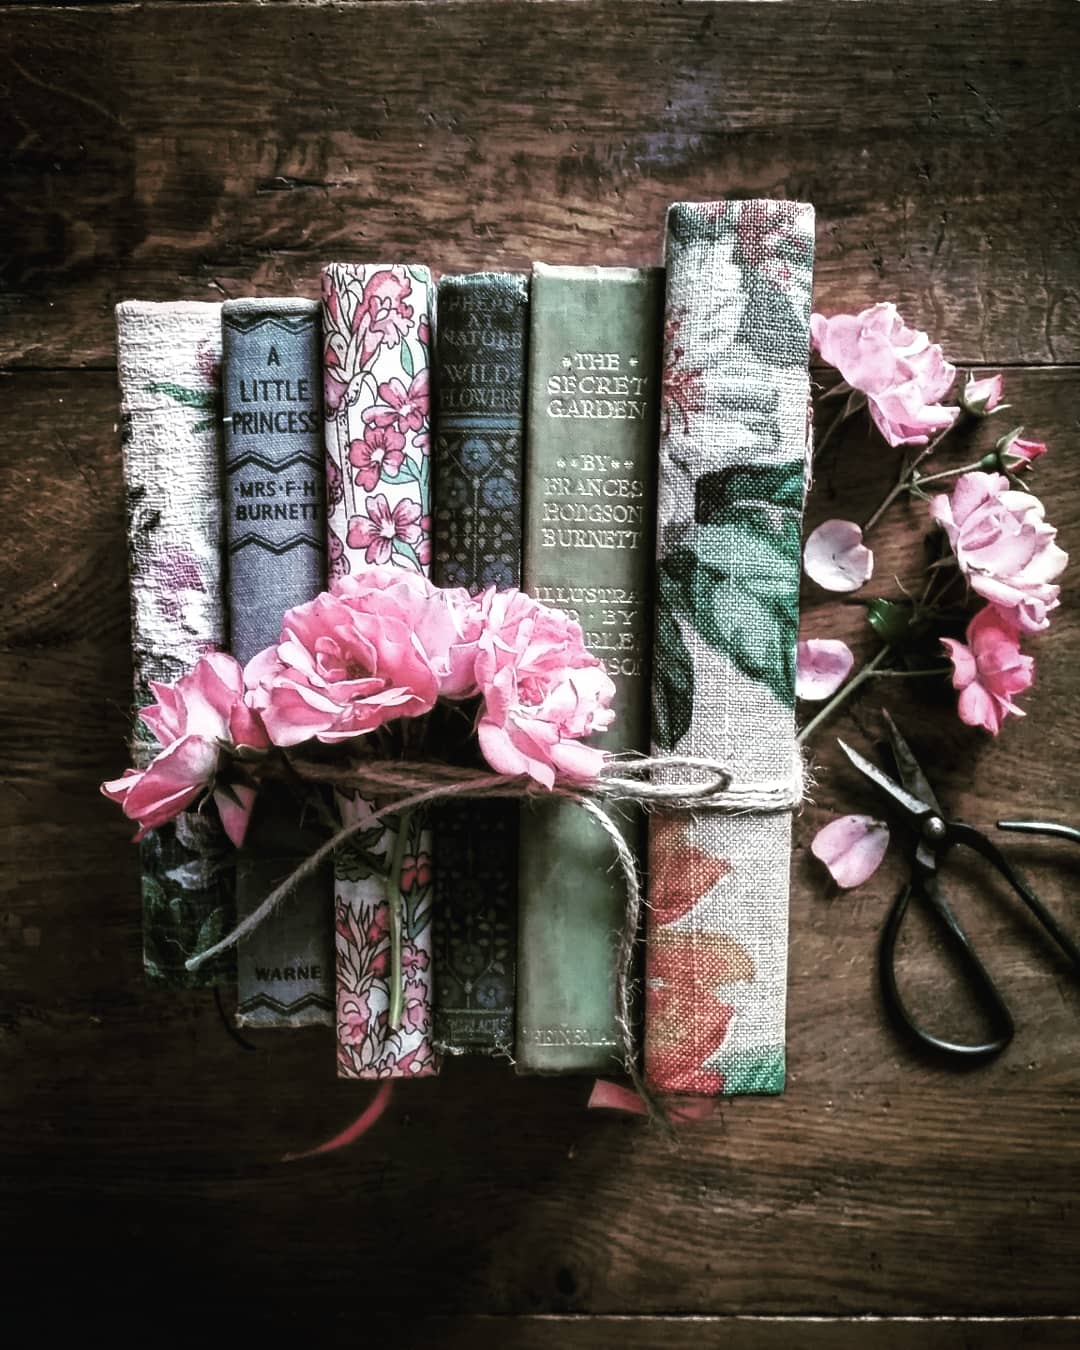 Beautiful vintage books and flowers